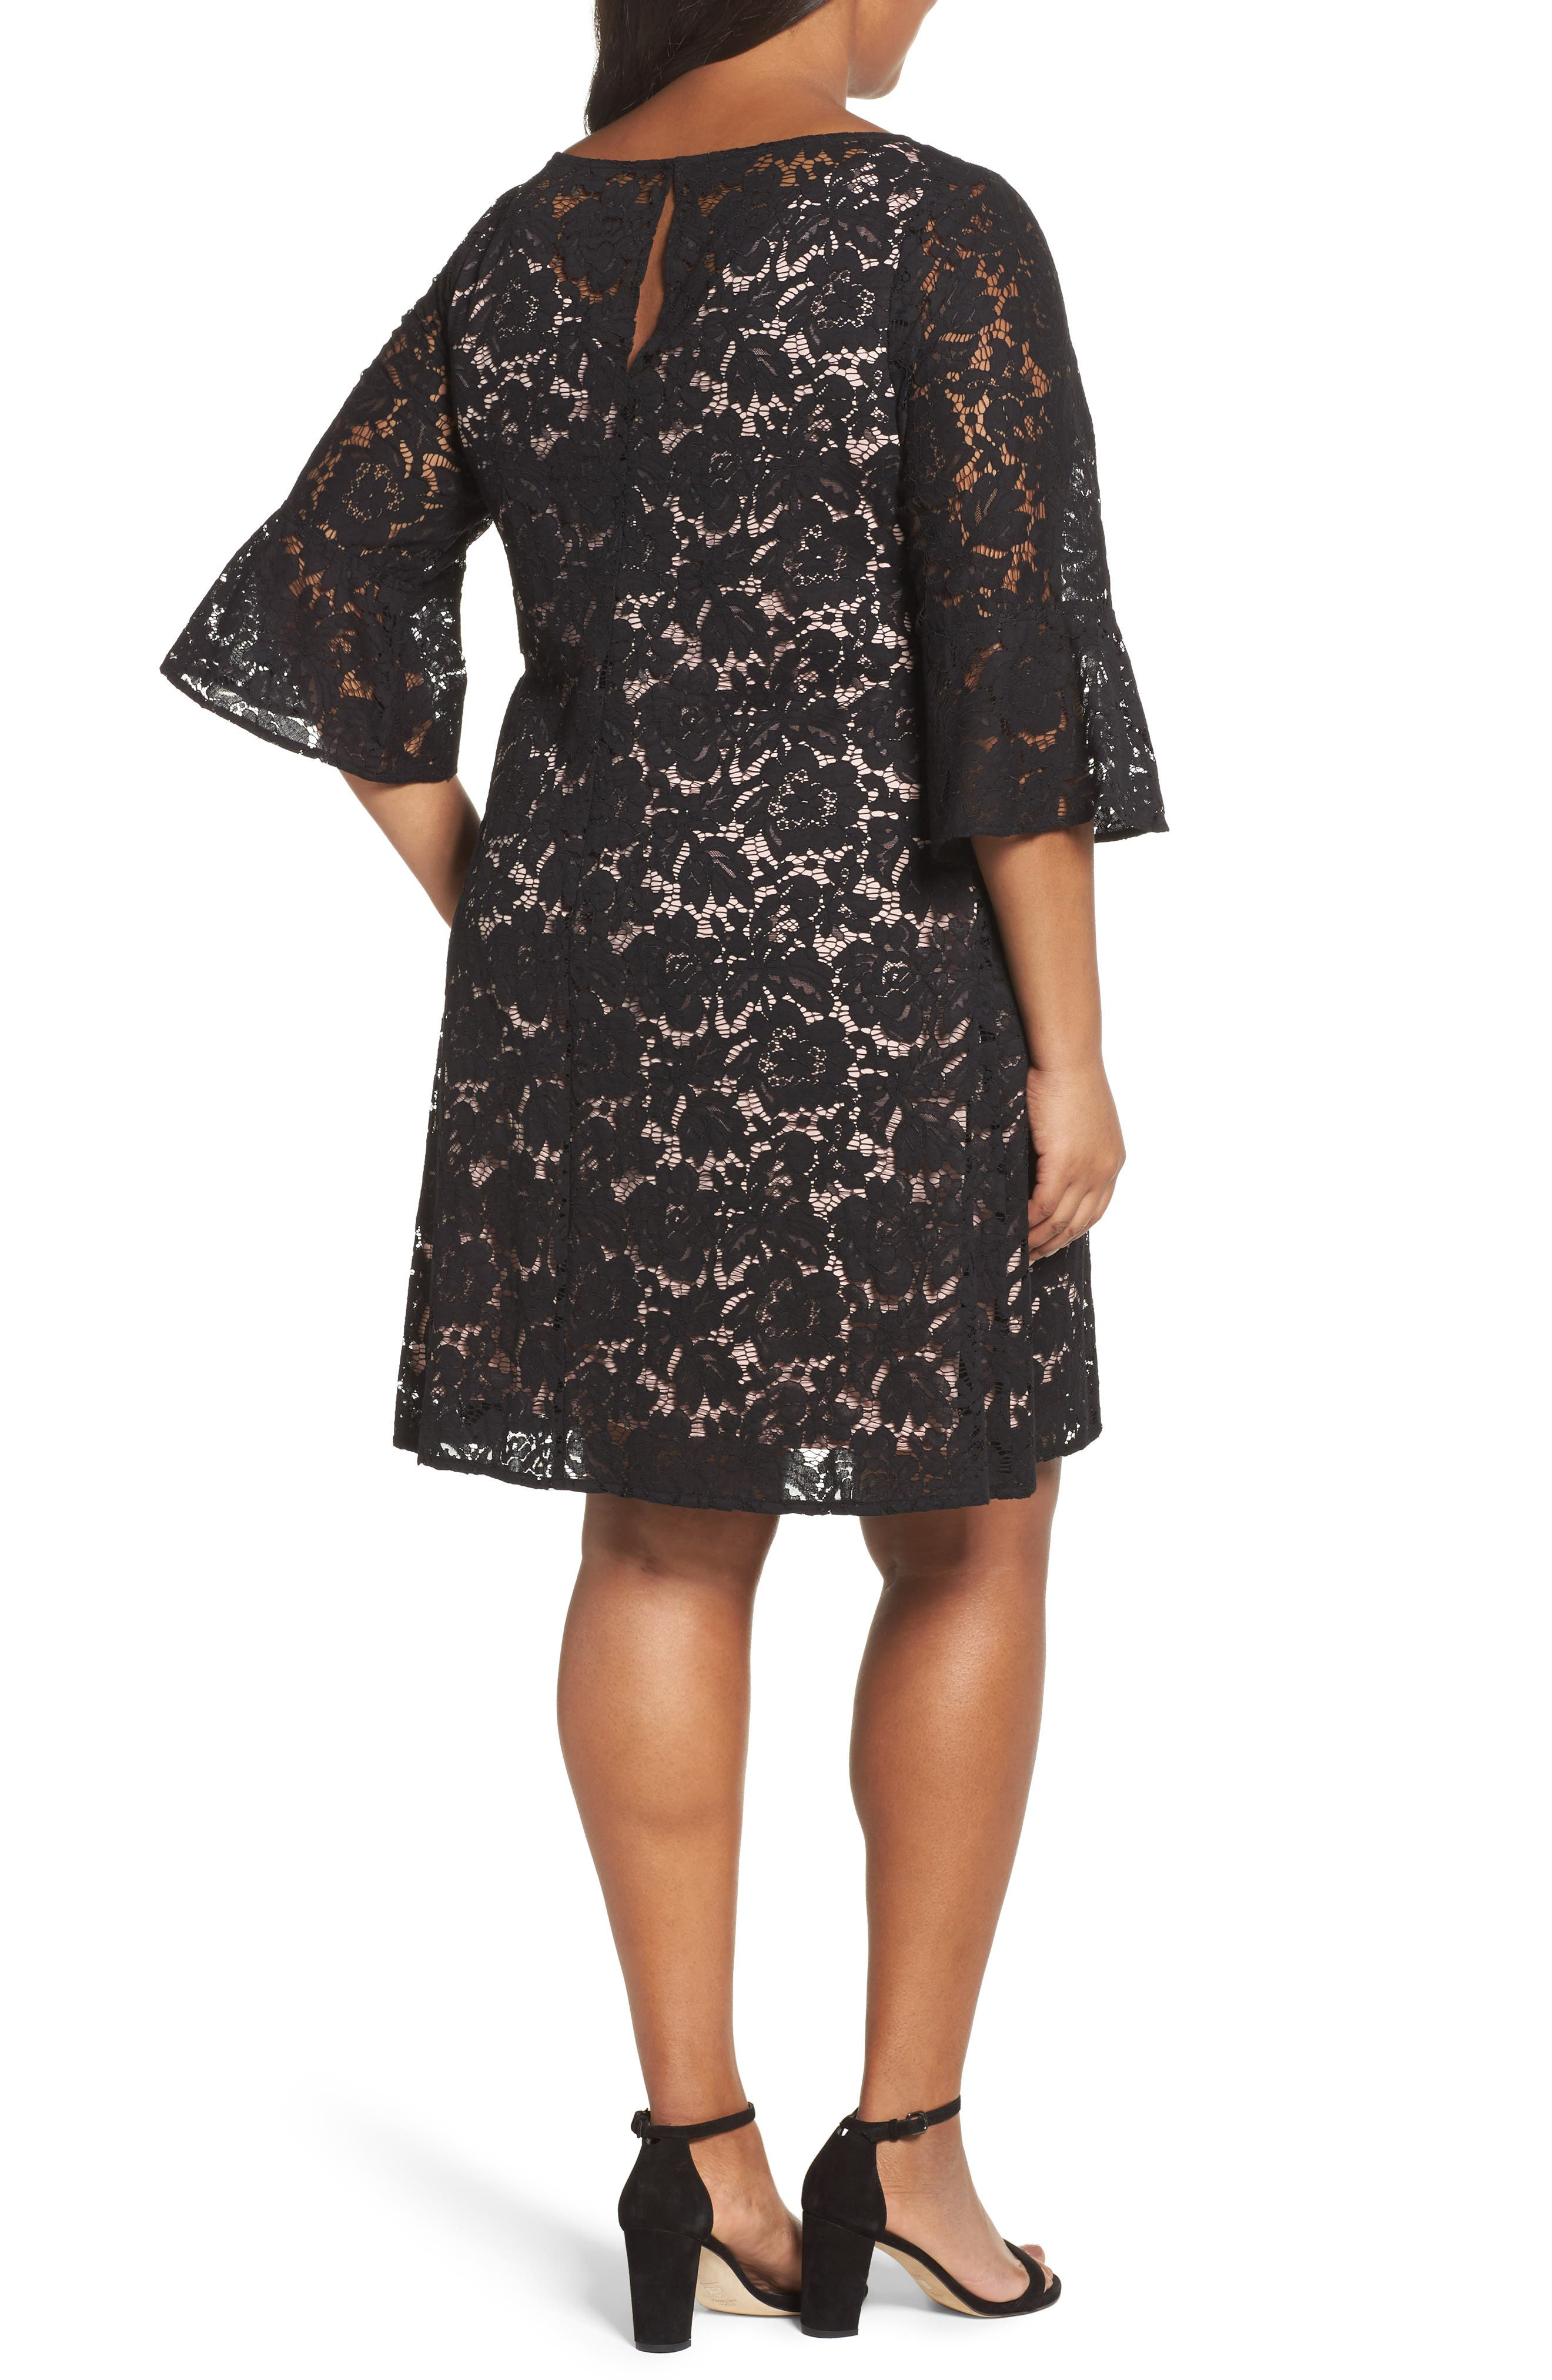 Lace A-Line Dress,                             Alternate thumbnail 2, color,                             Black/ Carnation